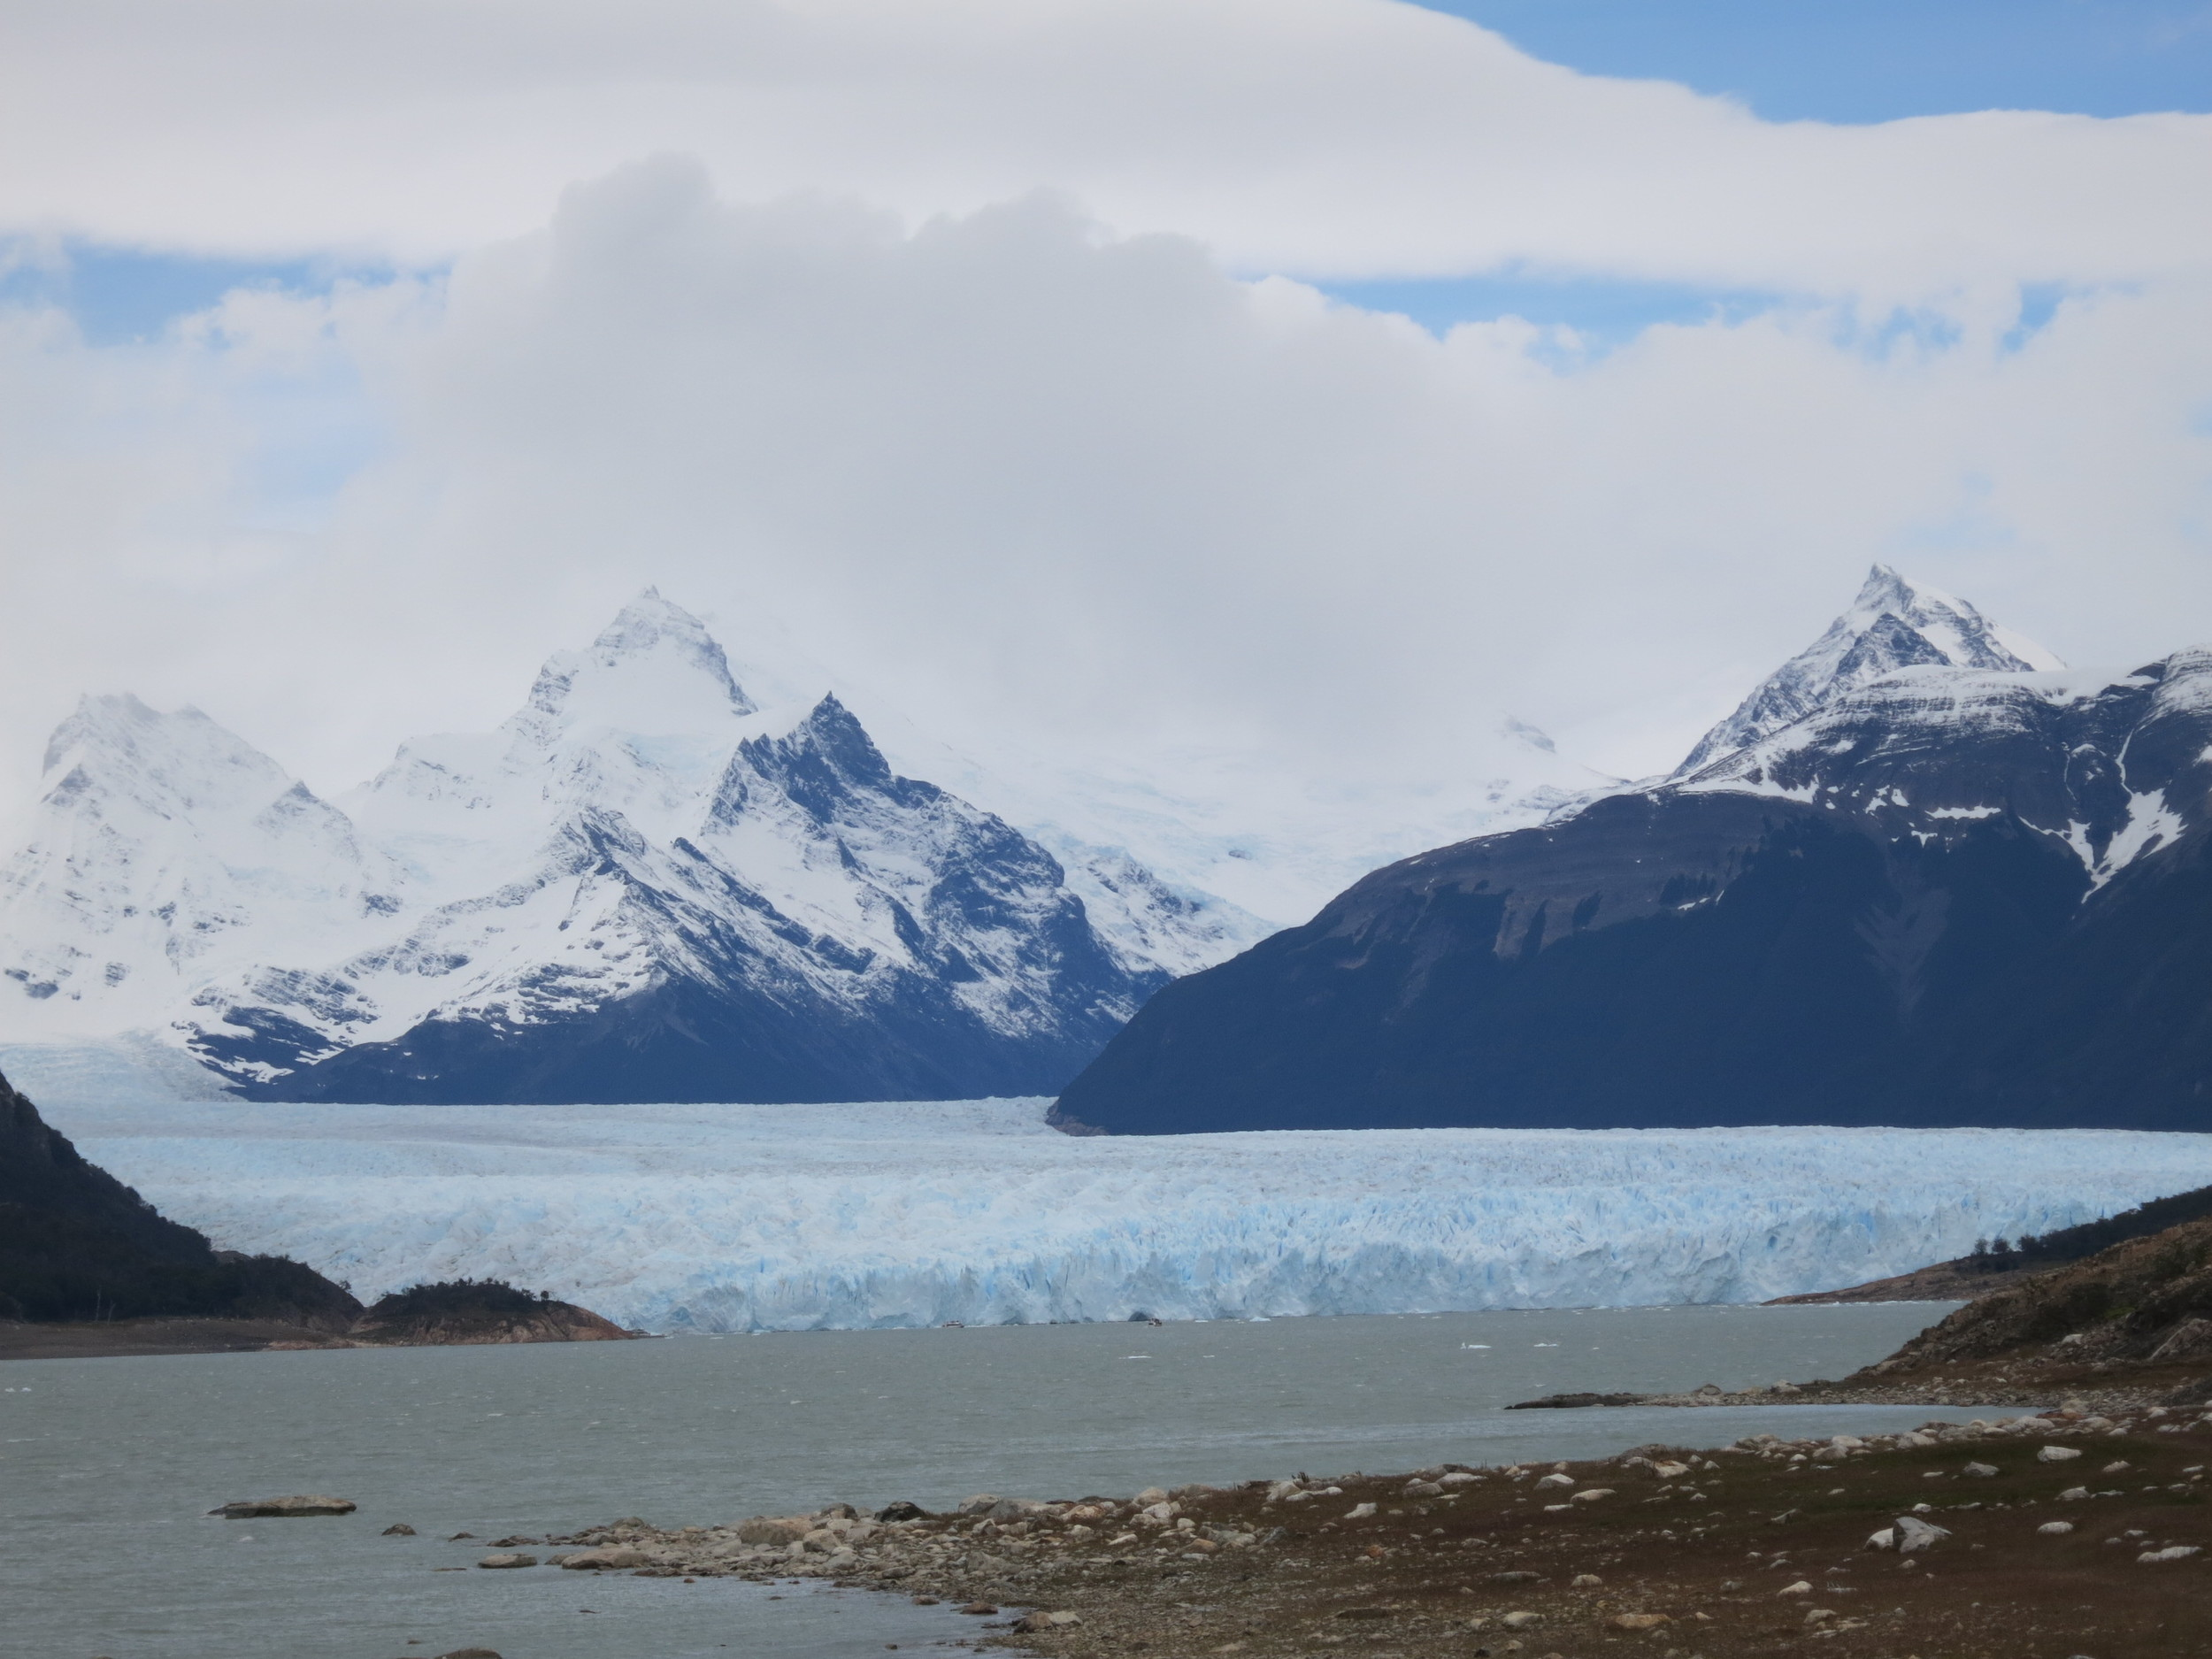 the glacier from afar